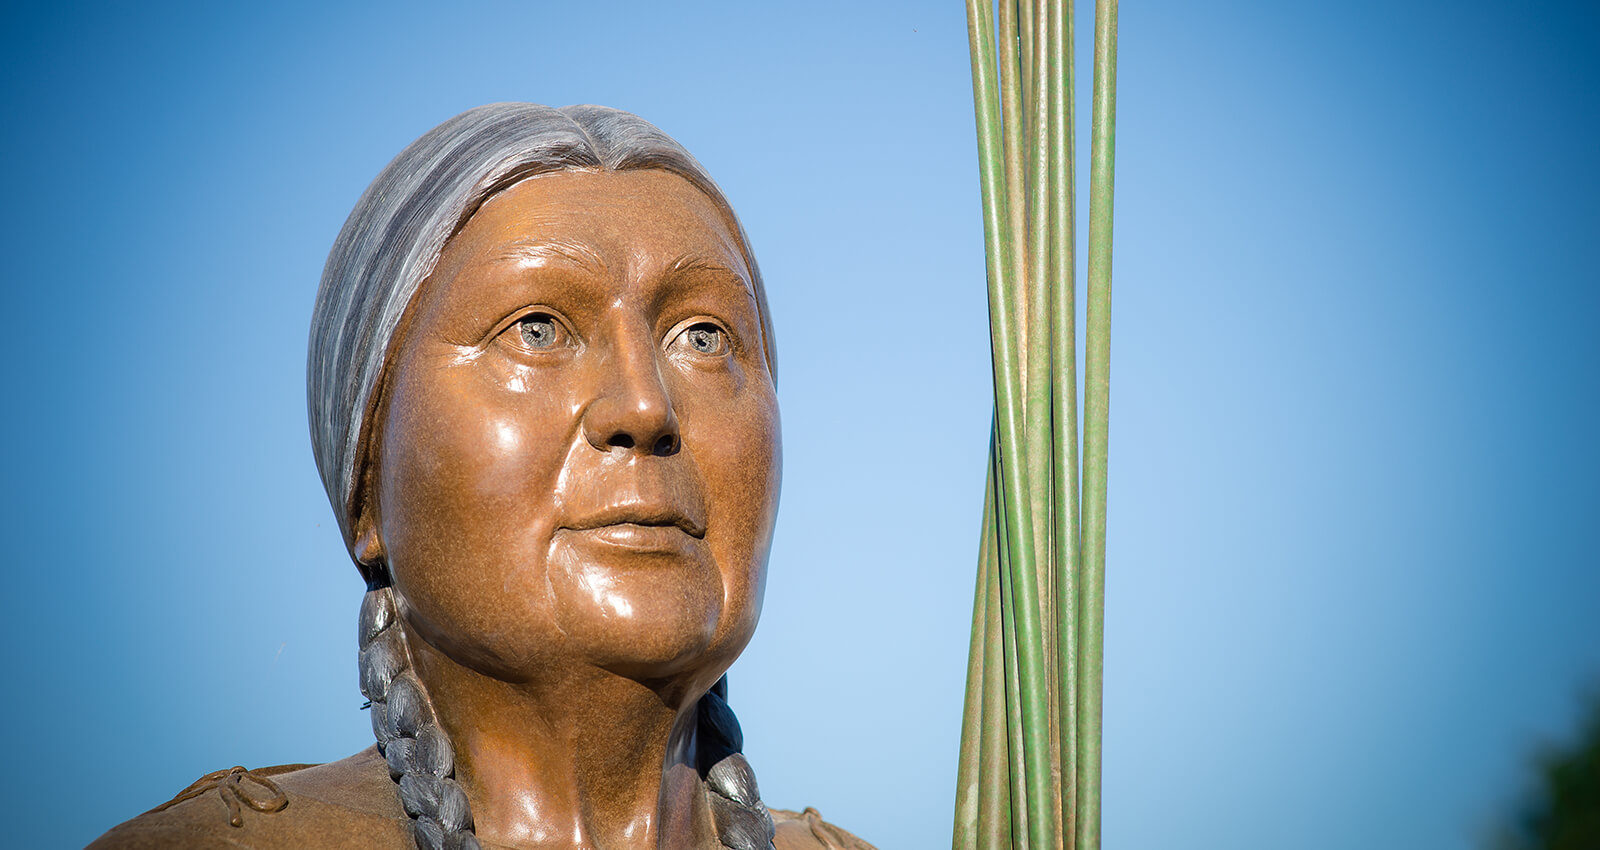 The face of The Gathering Place Elder Woman sculpture.